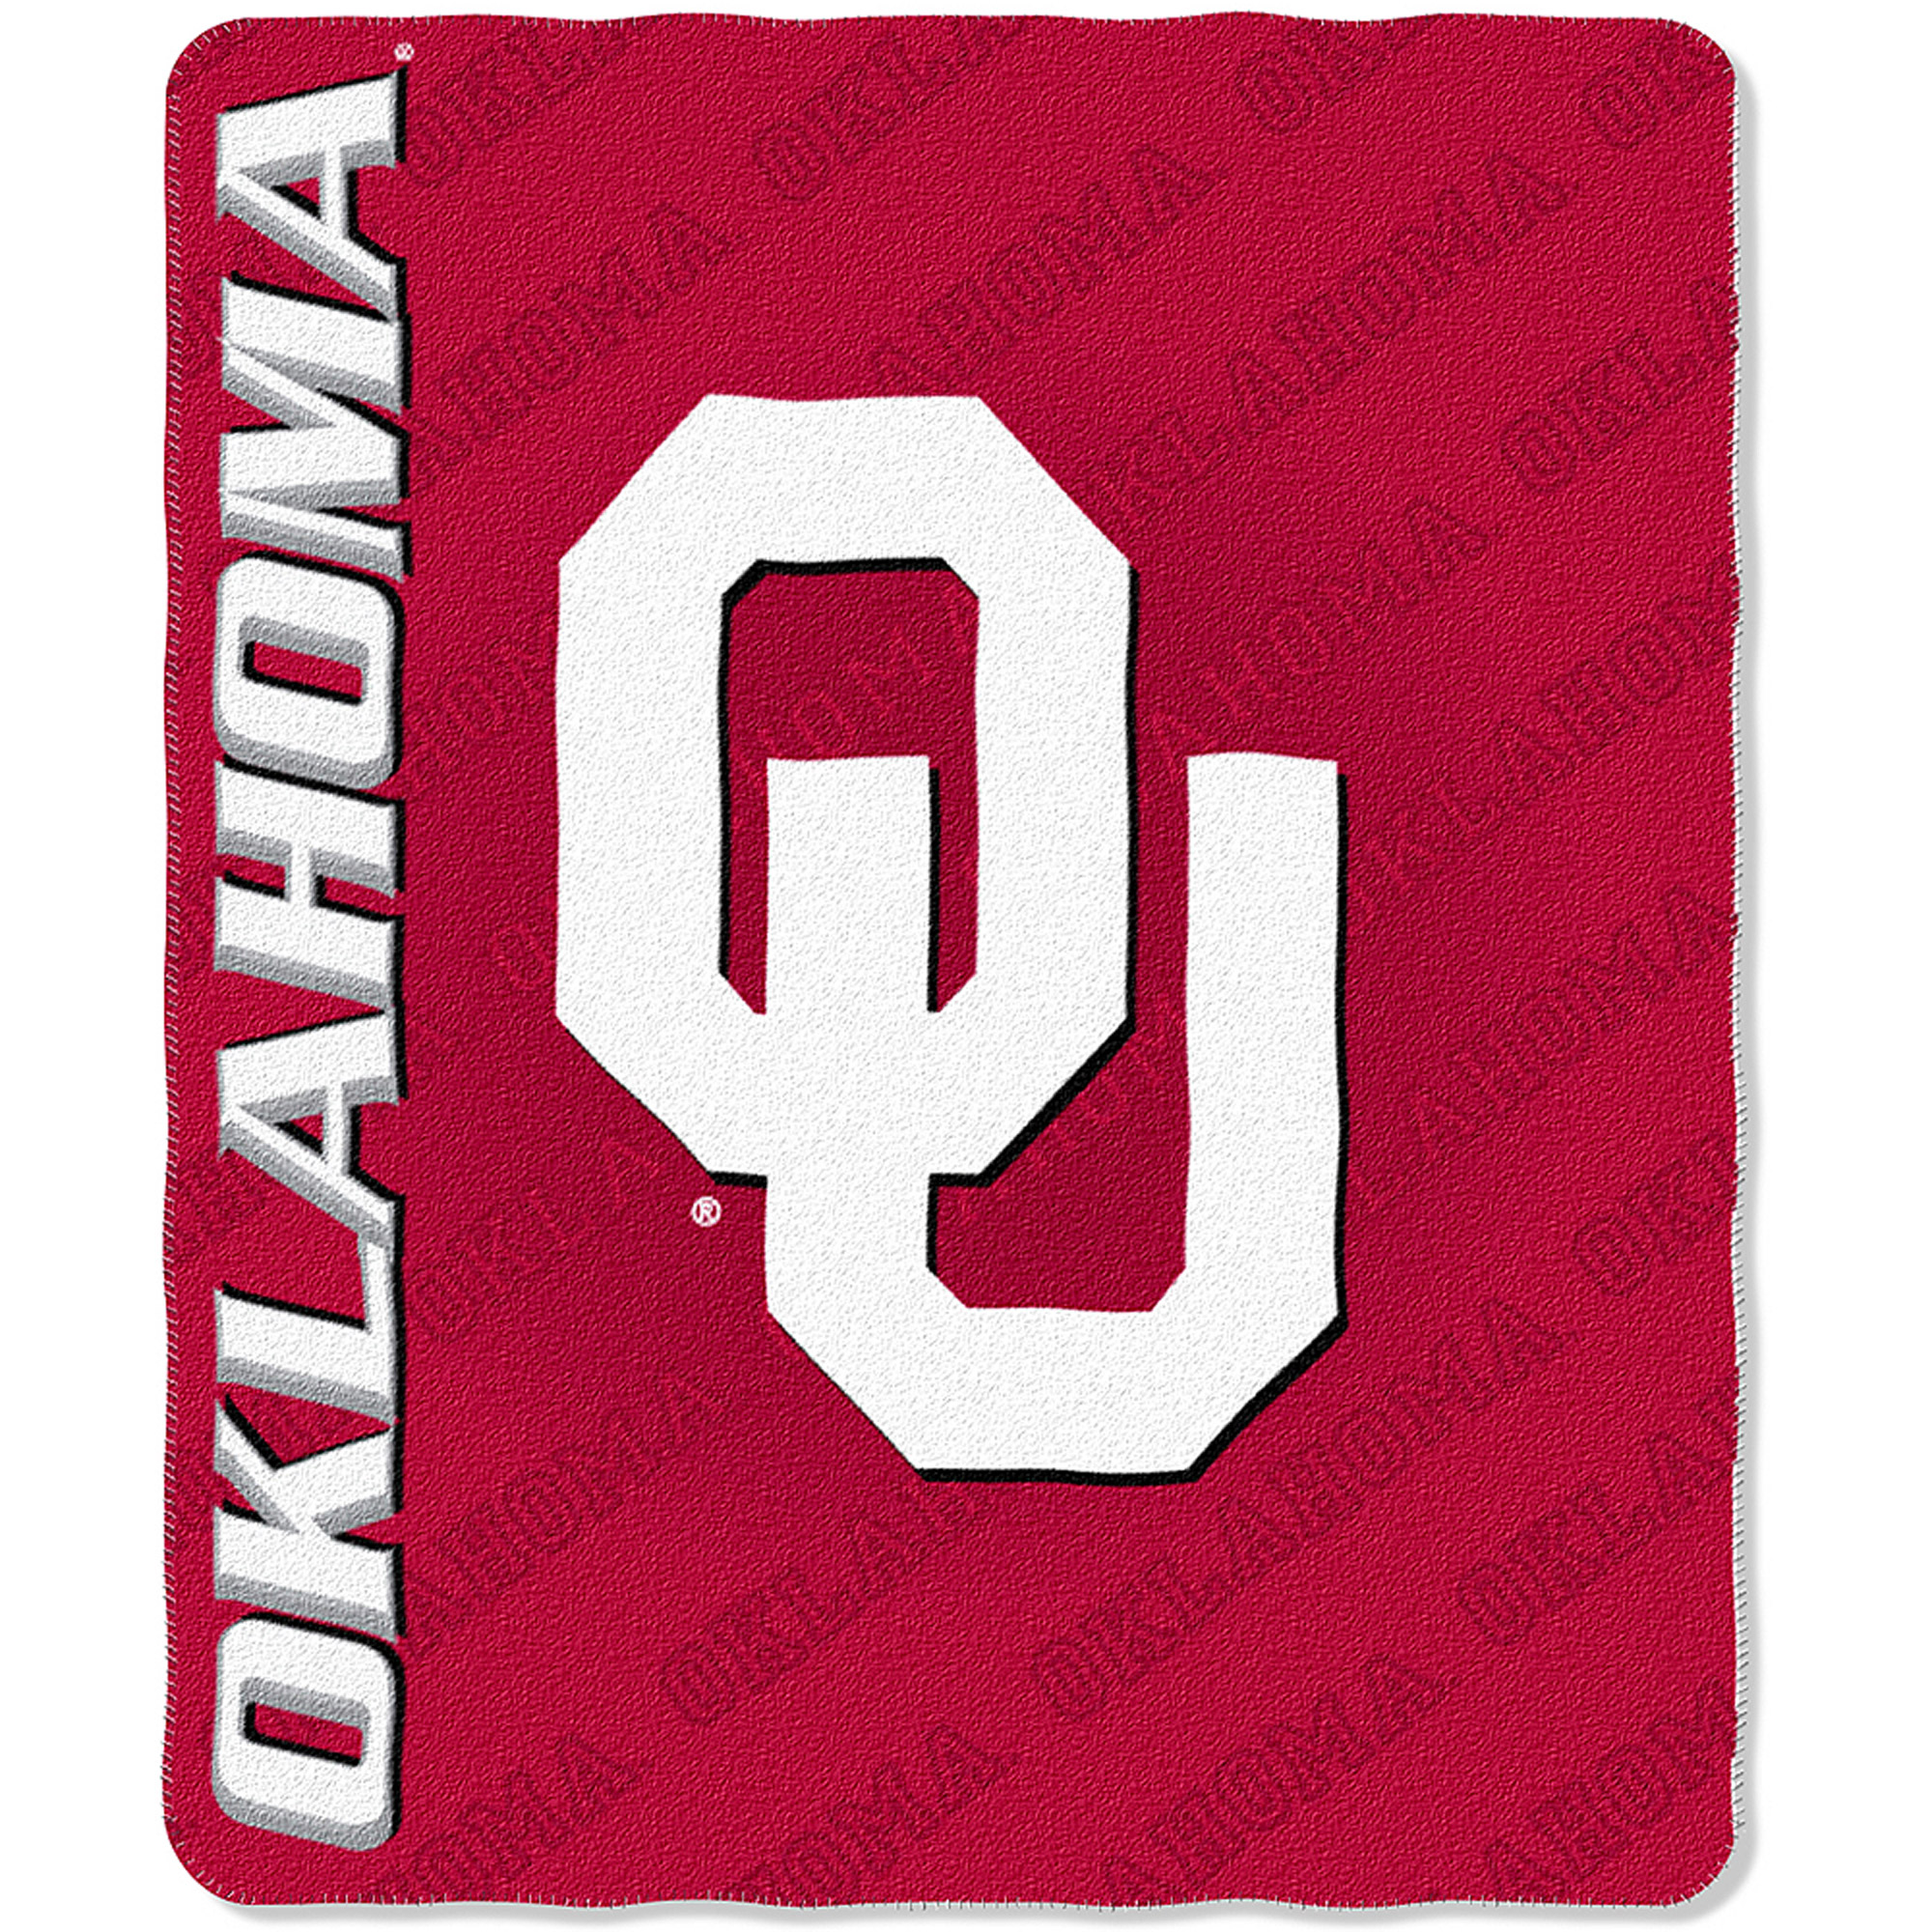 "NCAA Oklahoma Sooners 50"" x 60"" Fleece Throw"